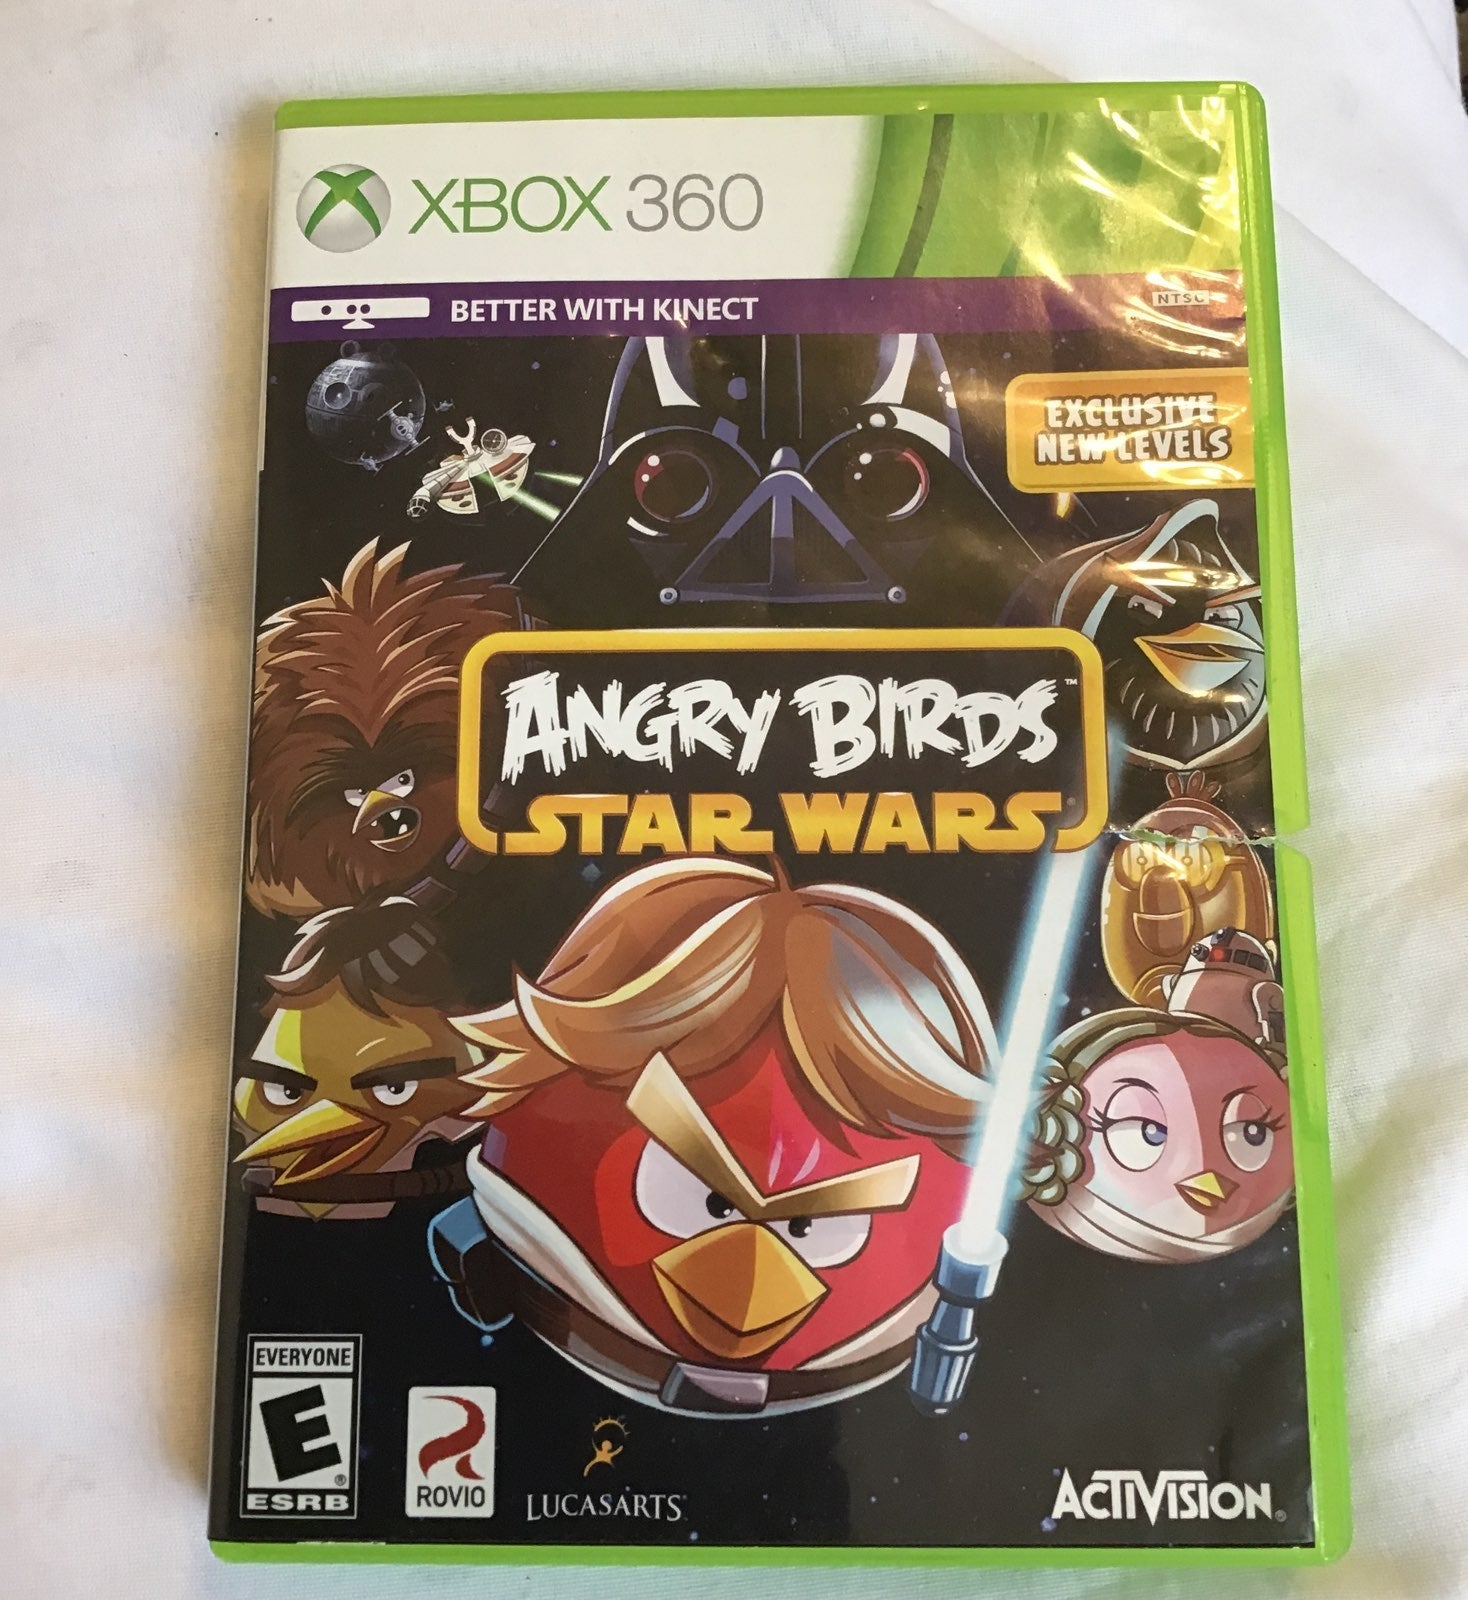 Xbox 360 Kinect Angry Birds Star Wars, g